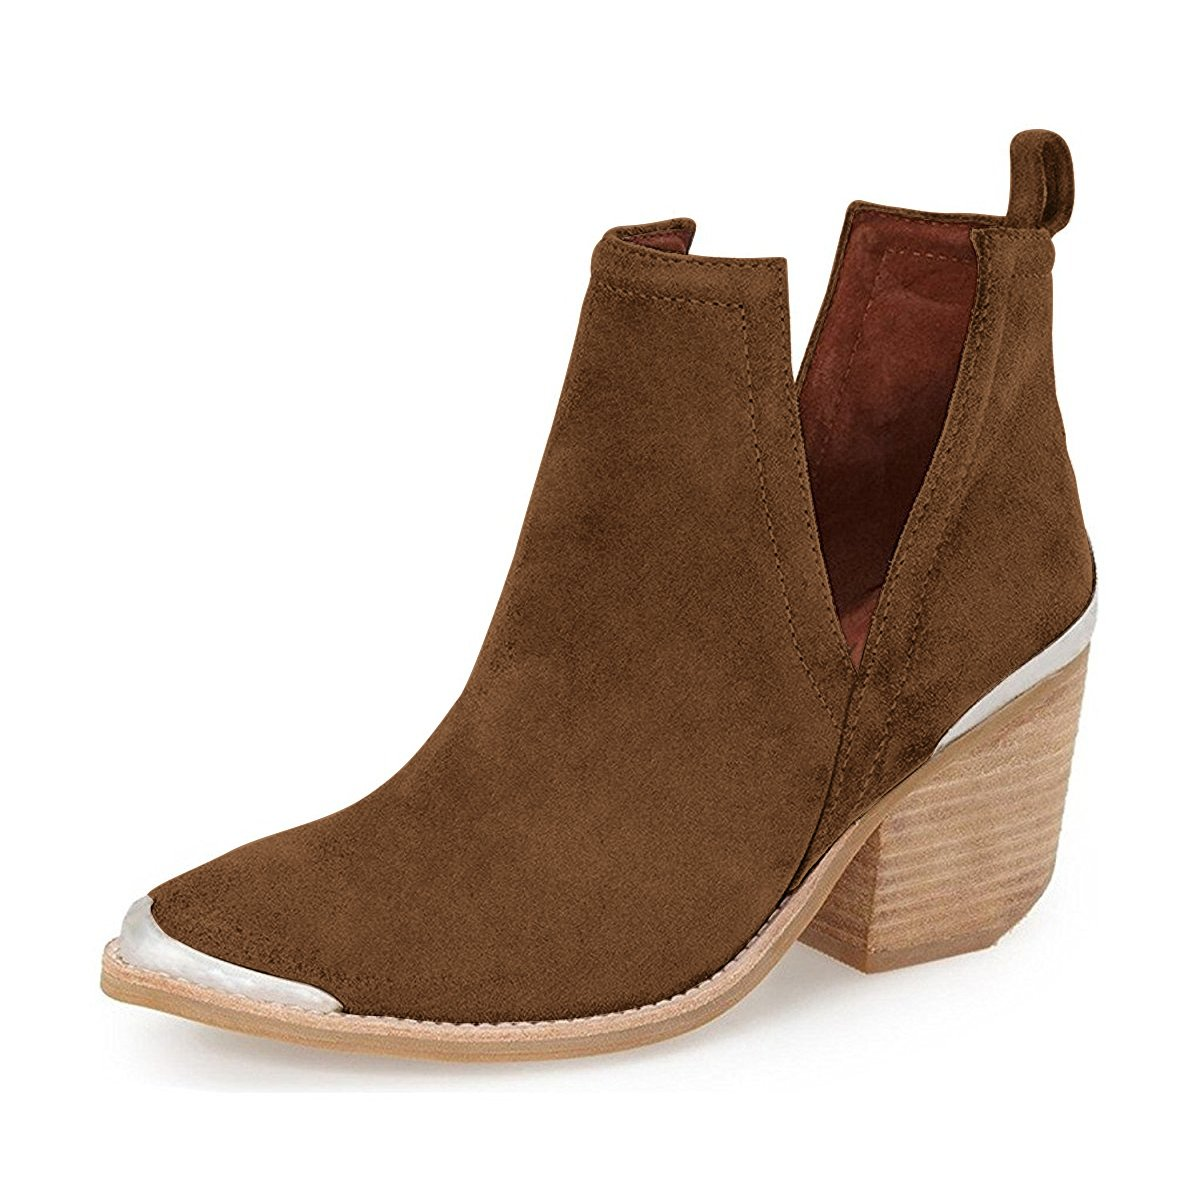 YDN Women Ankle Booties Low Heel Faux Suede Stacked Boots Cut Out Shoes with Metal Toe B01LB3X52O 7 M US|Dark Brown